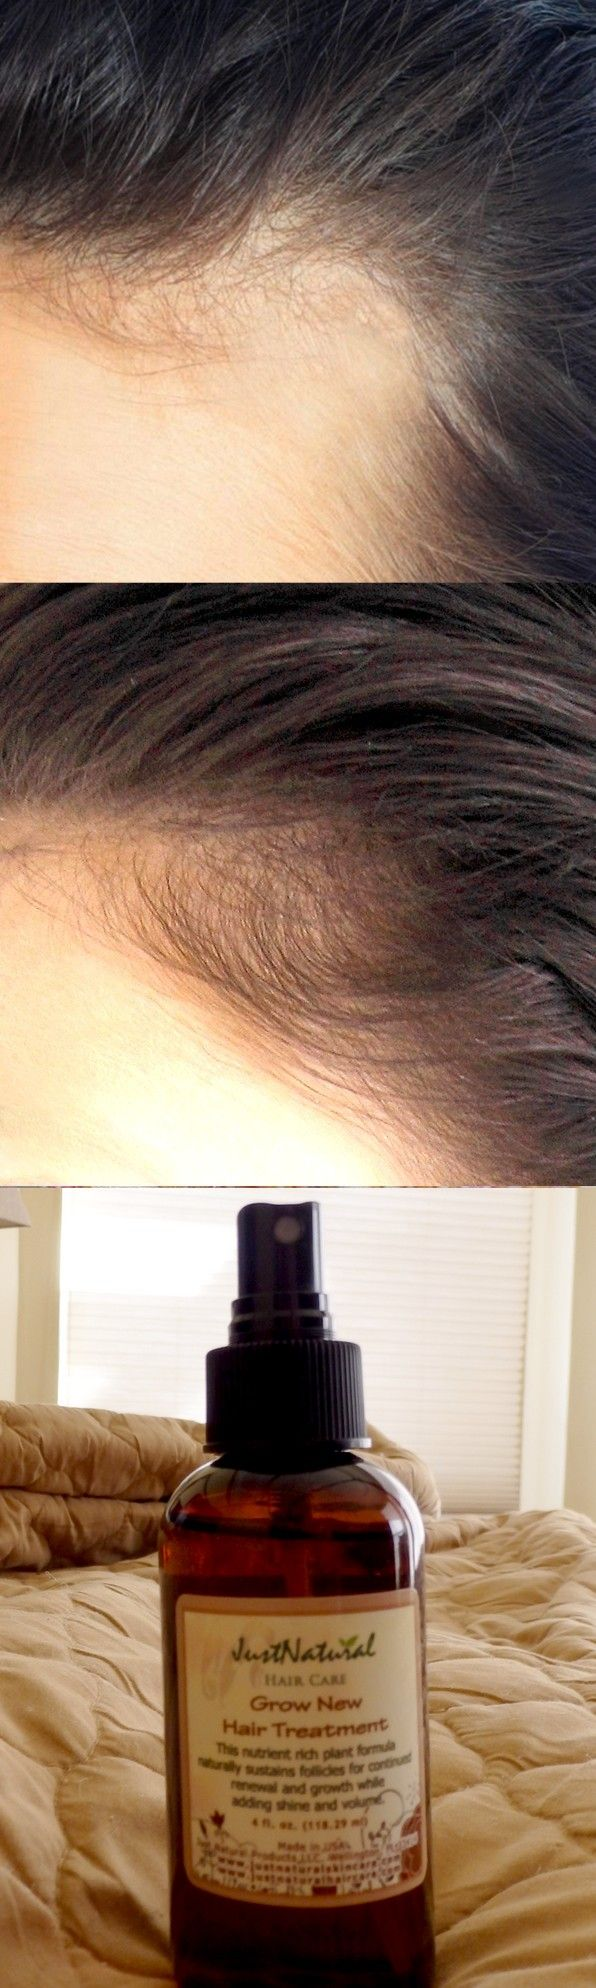 All I can say is thank you! I was in an accident almost 6 months ago and was told a patch on my head would never grow hair. I was mortified that I would have a bald patch. After two months of using this grow new hair treatment I have tiny hair growing where doctors said I never would! I can't wait for my next appointment so I can have them add this product for other patients. I wish I would have known about this product sooner so I could have started the hair growth earlier.